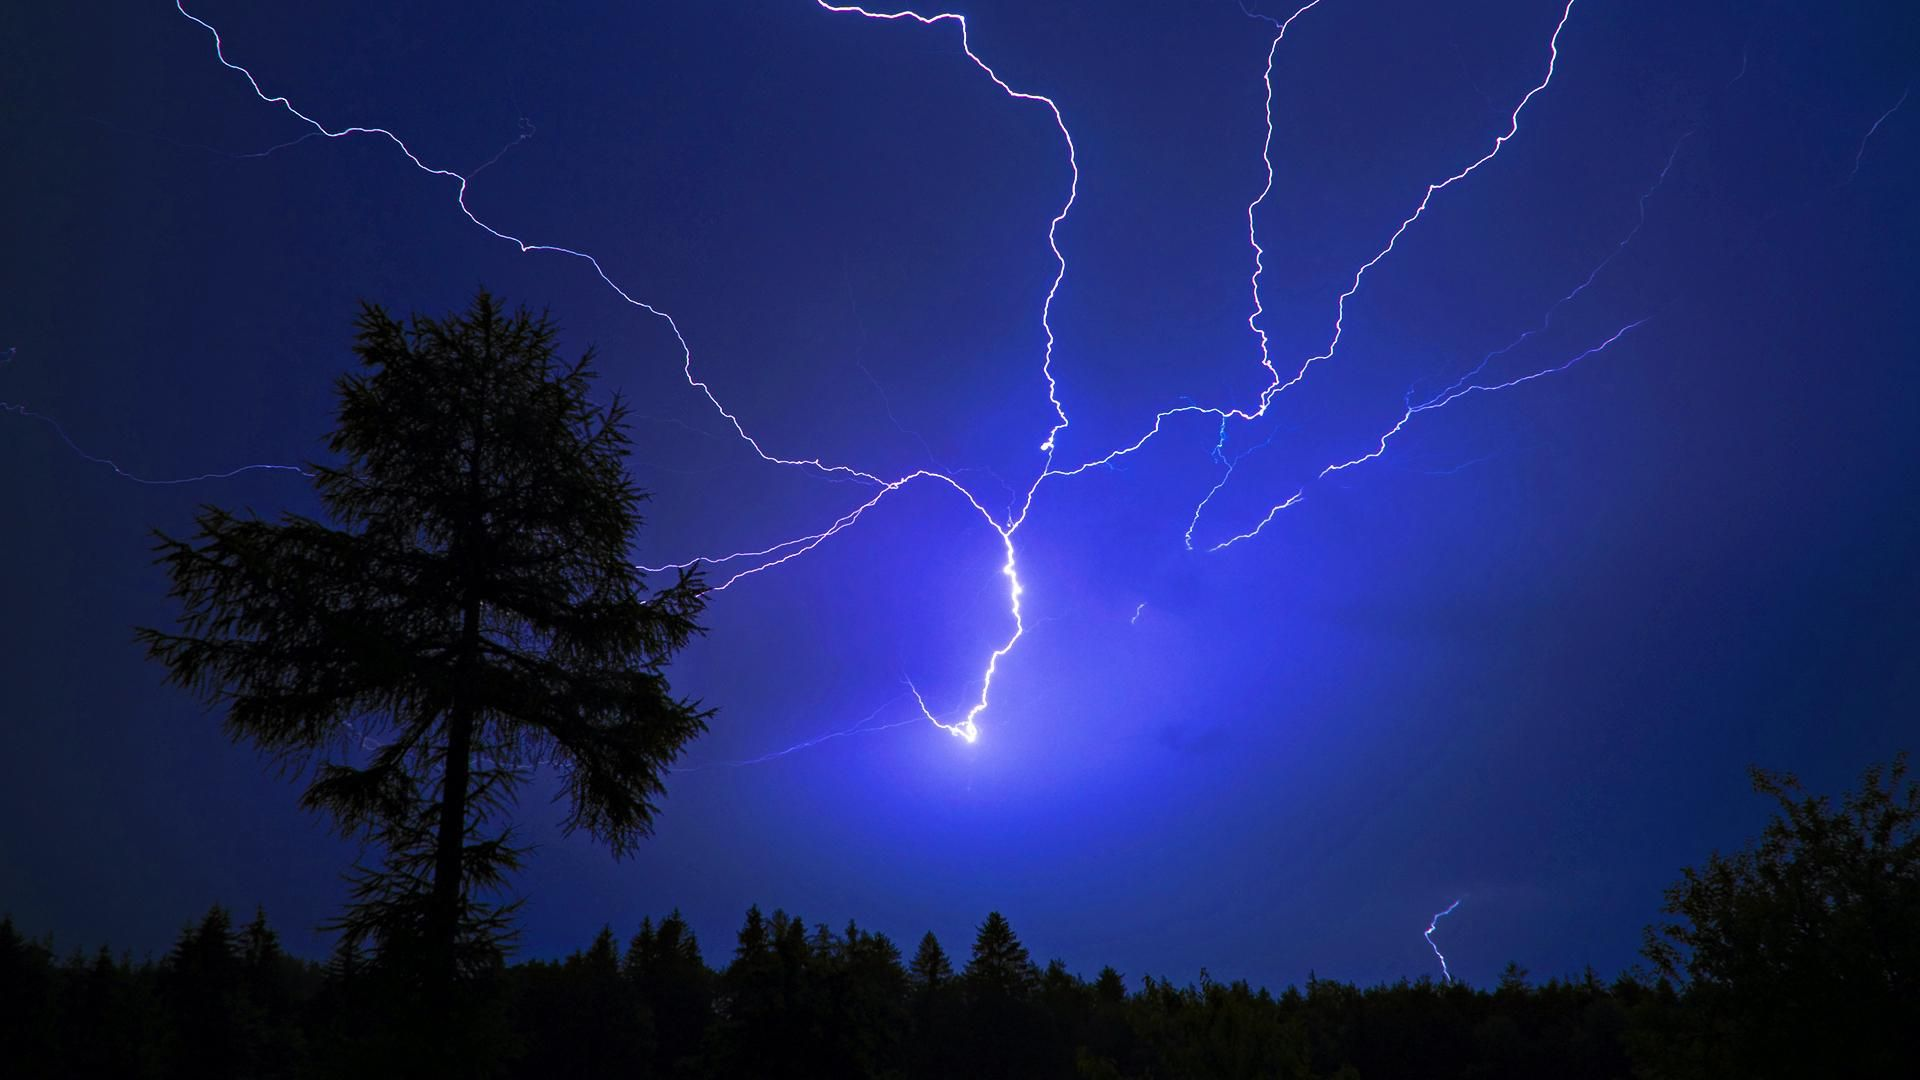 50 Thunderstorm Live Wallpapers   Download at WallpaperBro 1920x1080